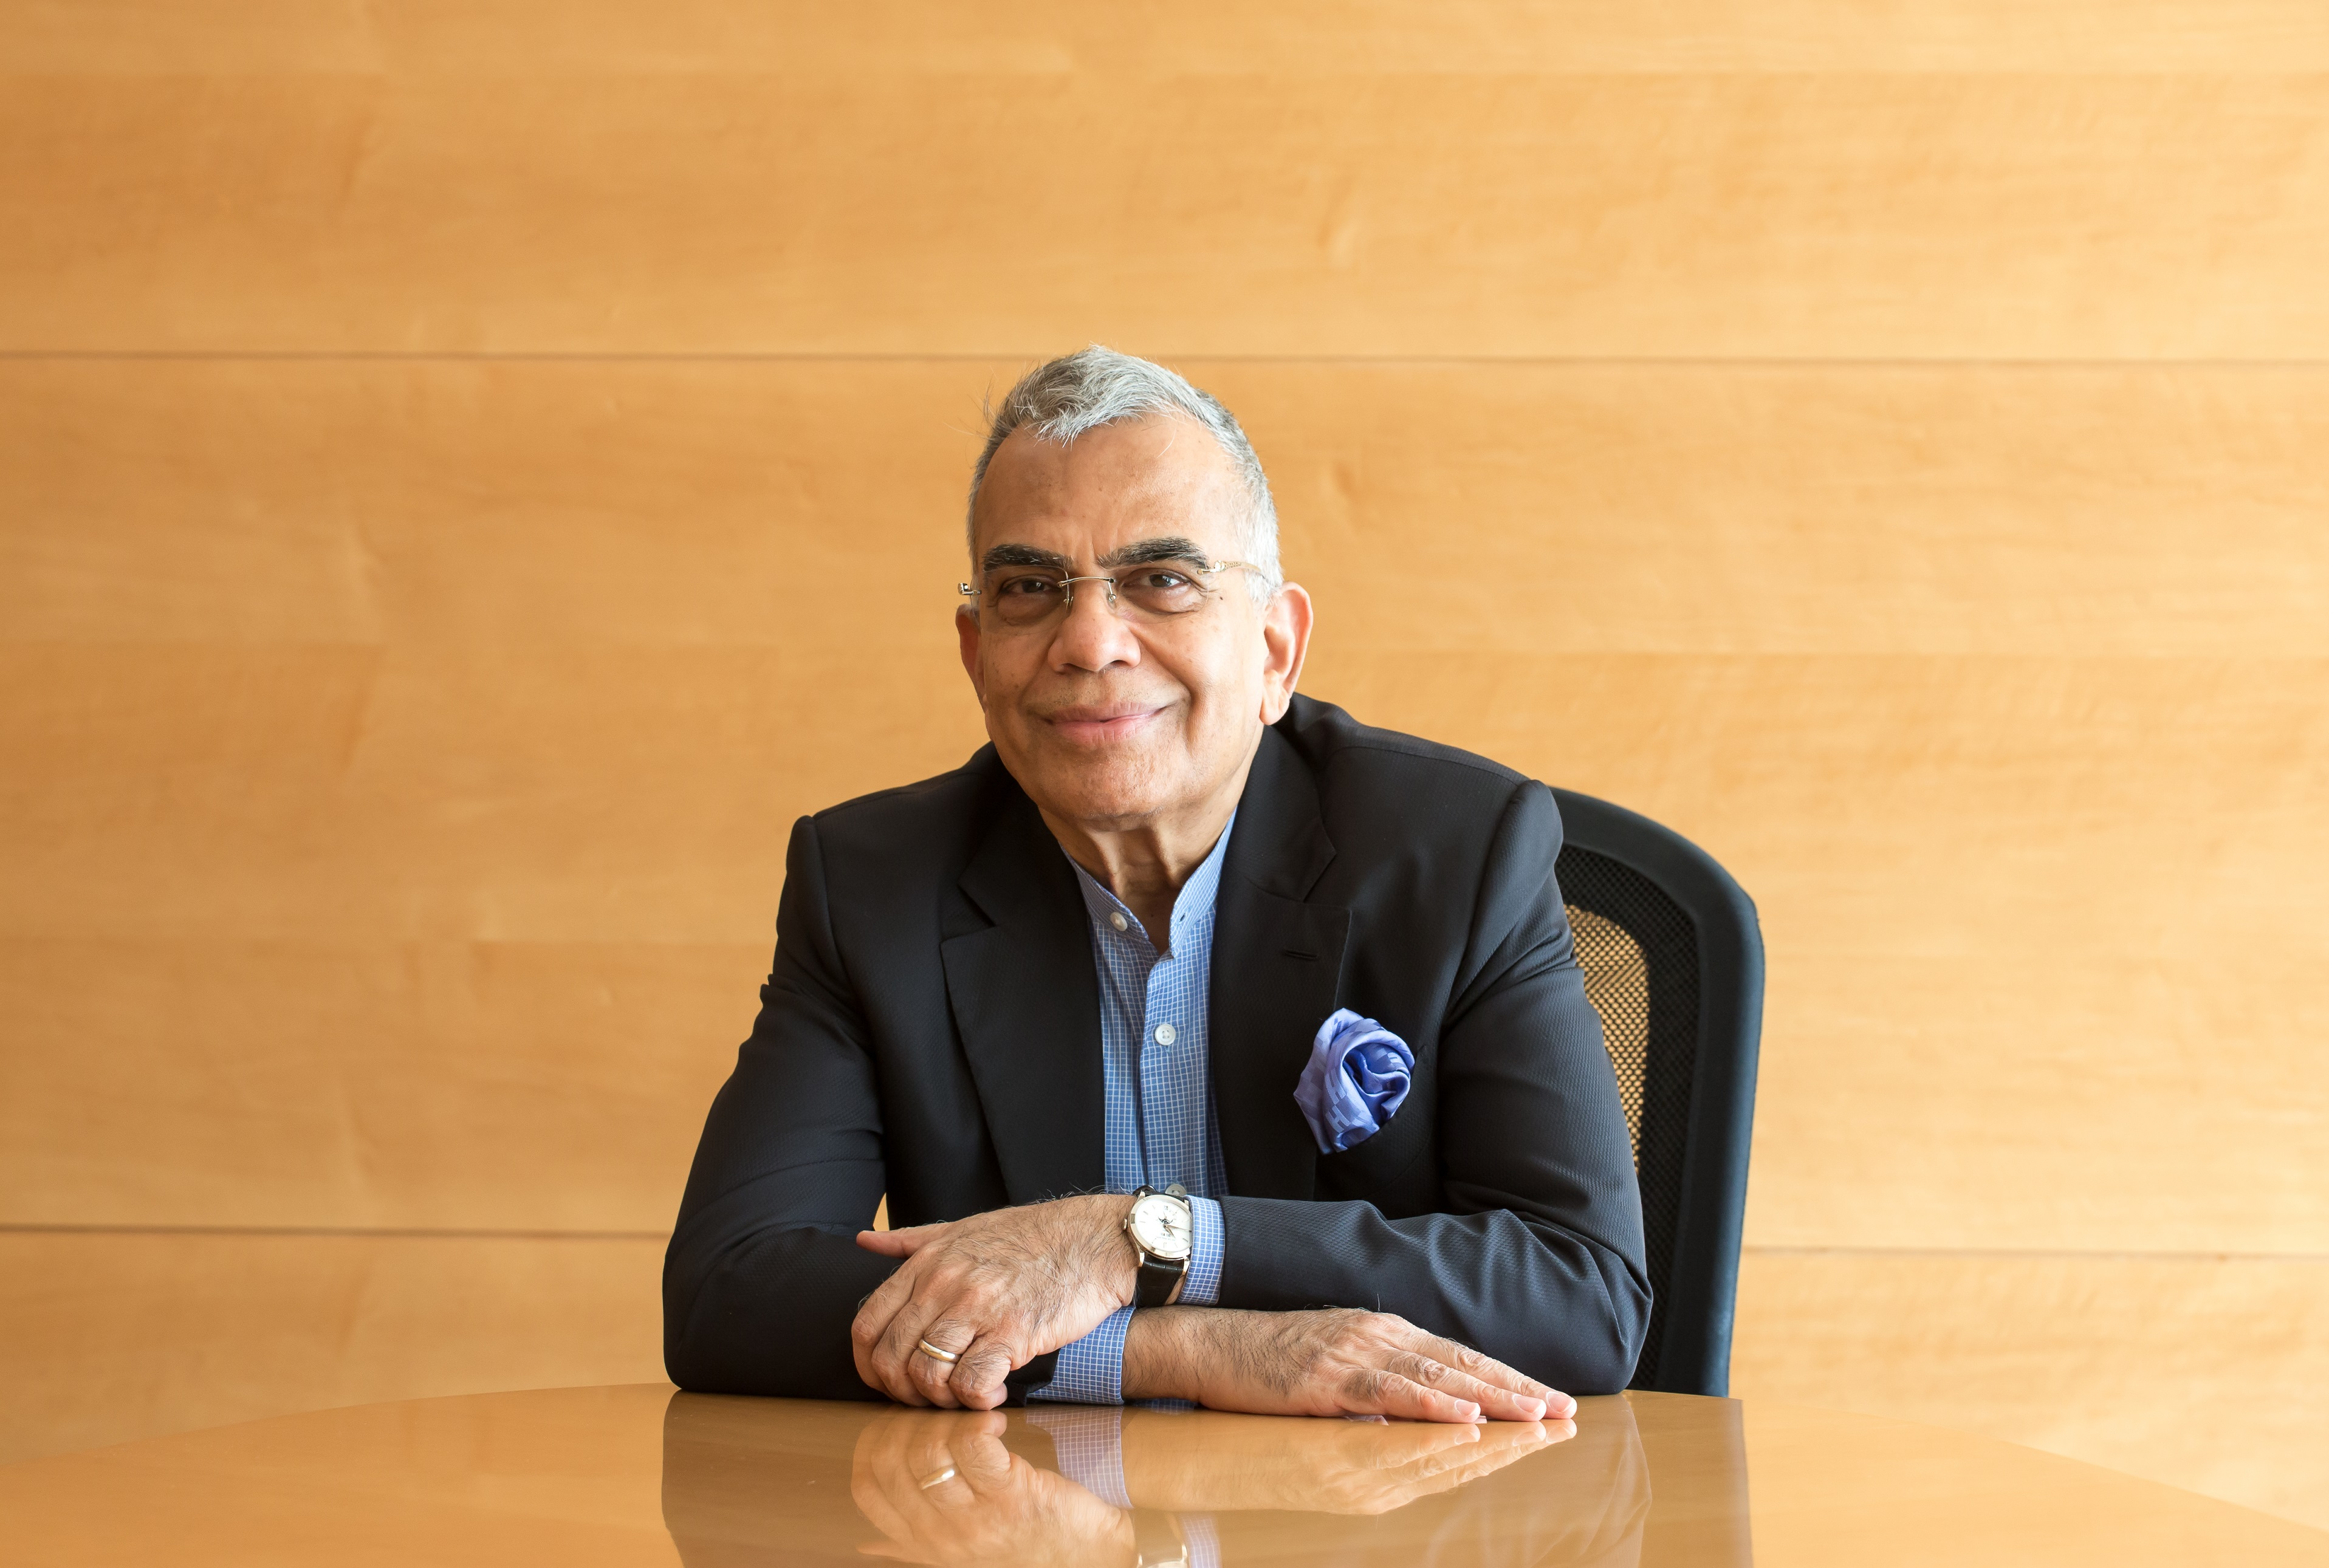 #16 PNC Menon, Founder and Chairman of Sobha